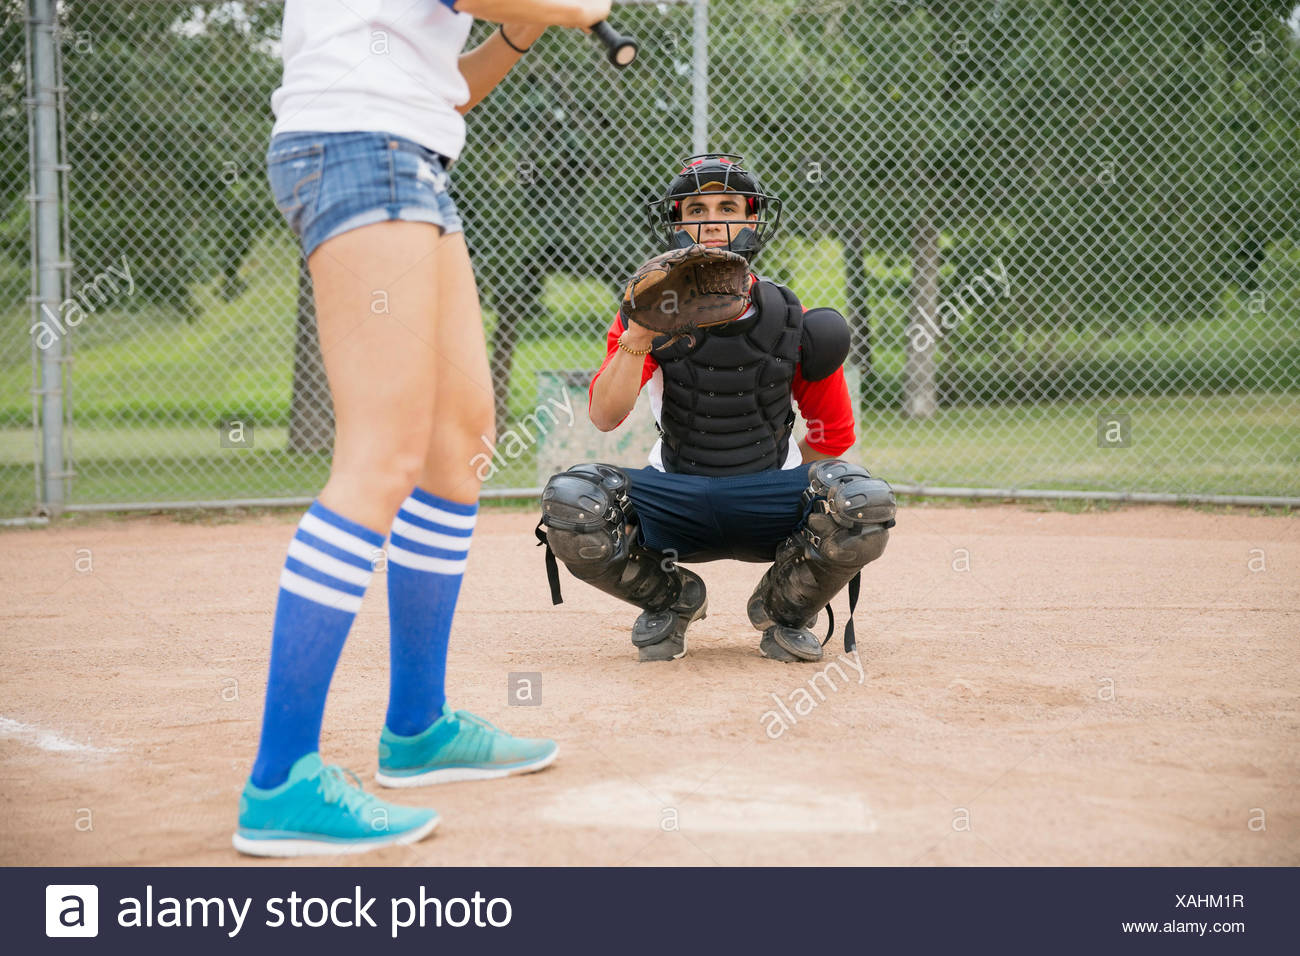 Catcher ready for ball at home plate - Stock Image